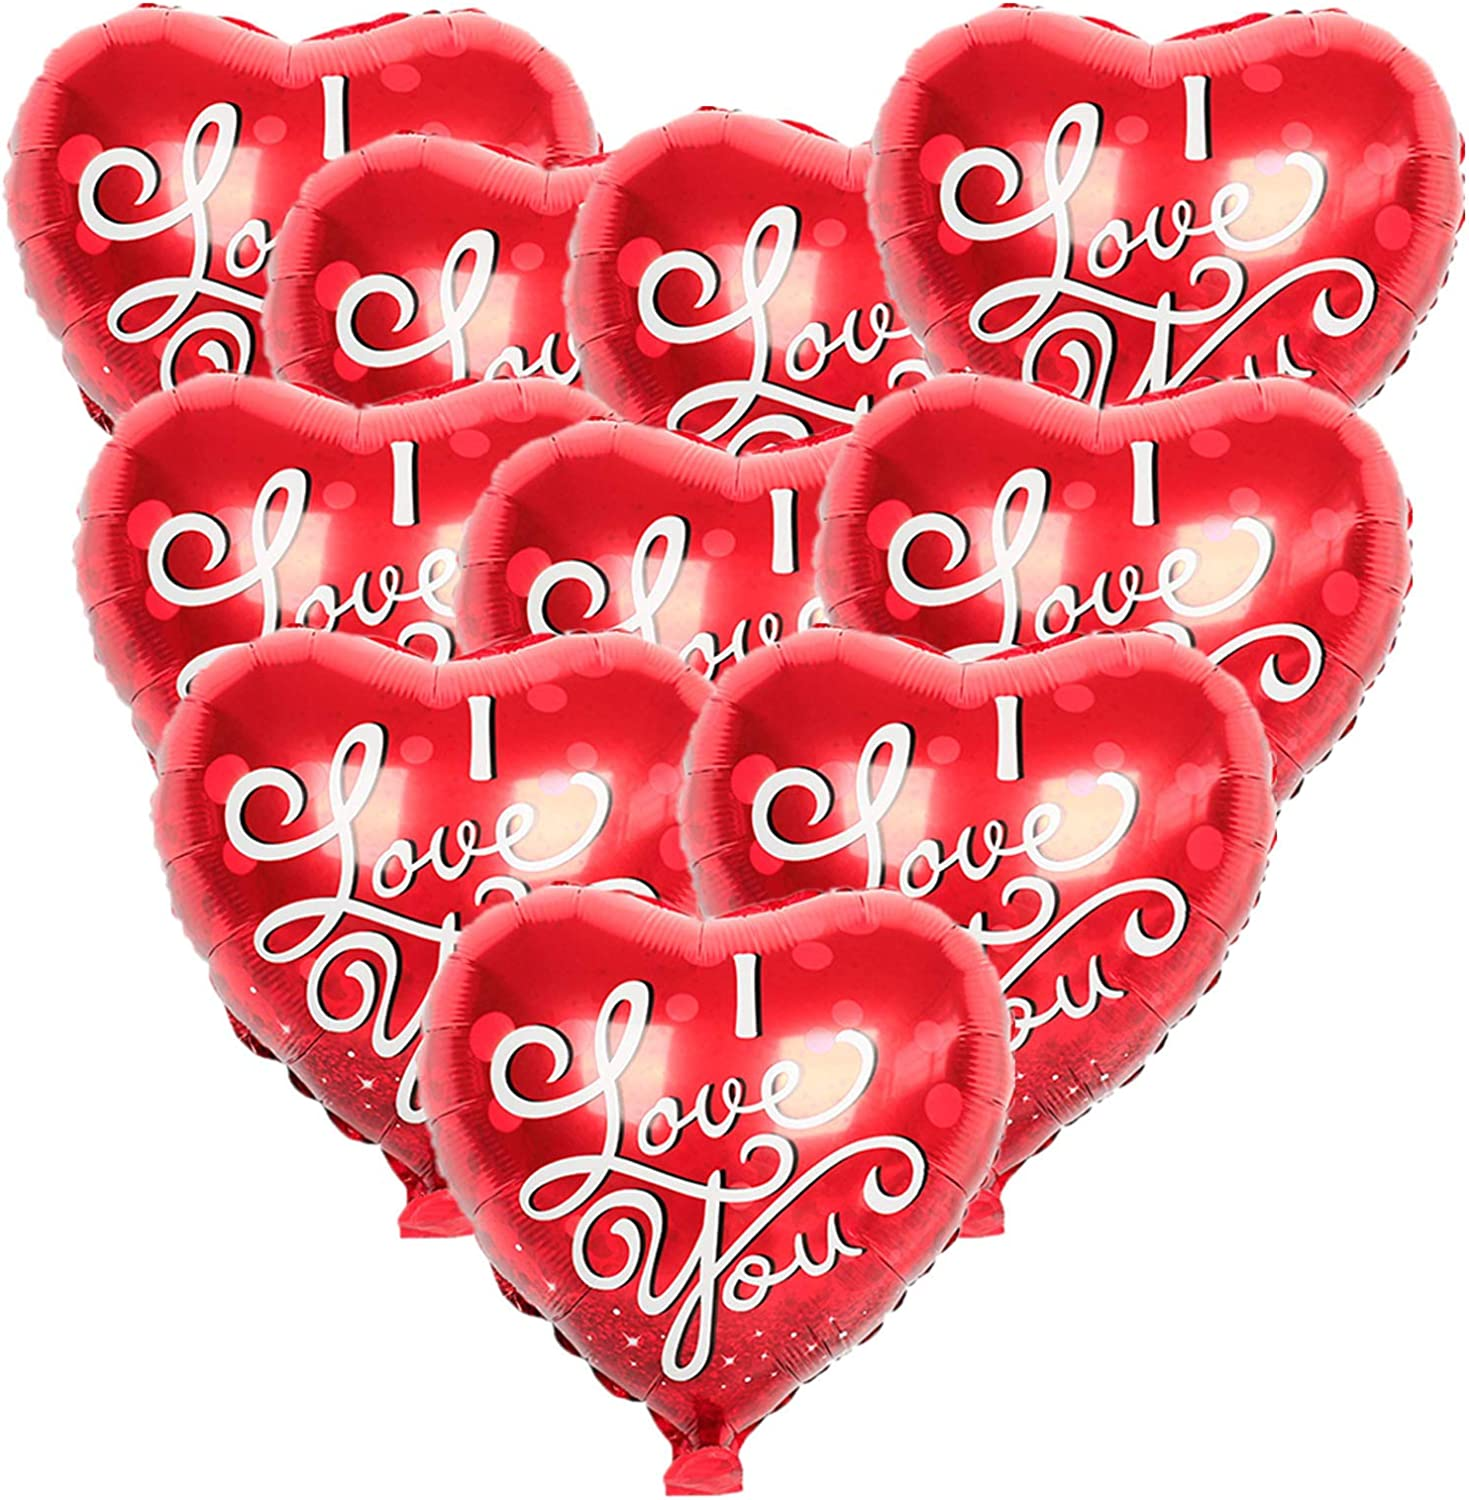 VWMYQ Valentine's Day Balloons Heart Balloons I Love You Foil Balloons For Valentines Day Wedding Engagement Party Decor 10 Pcs